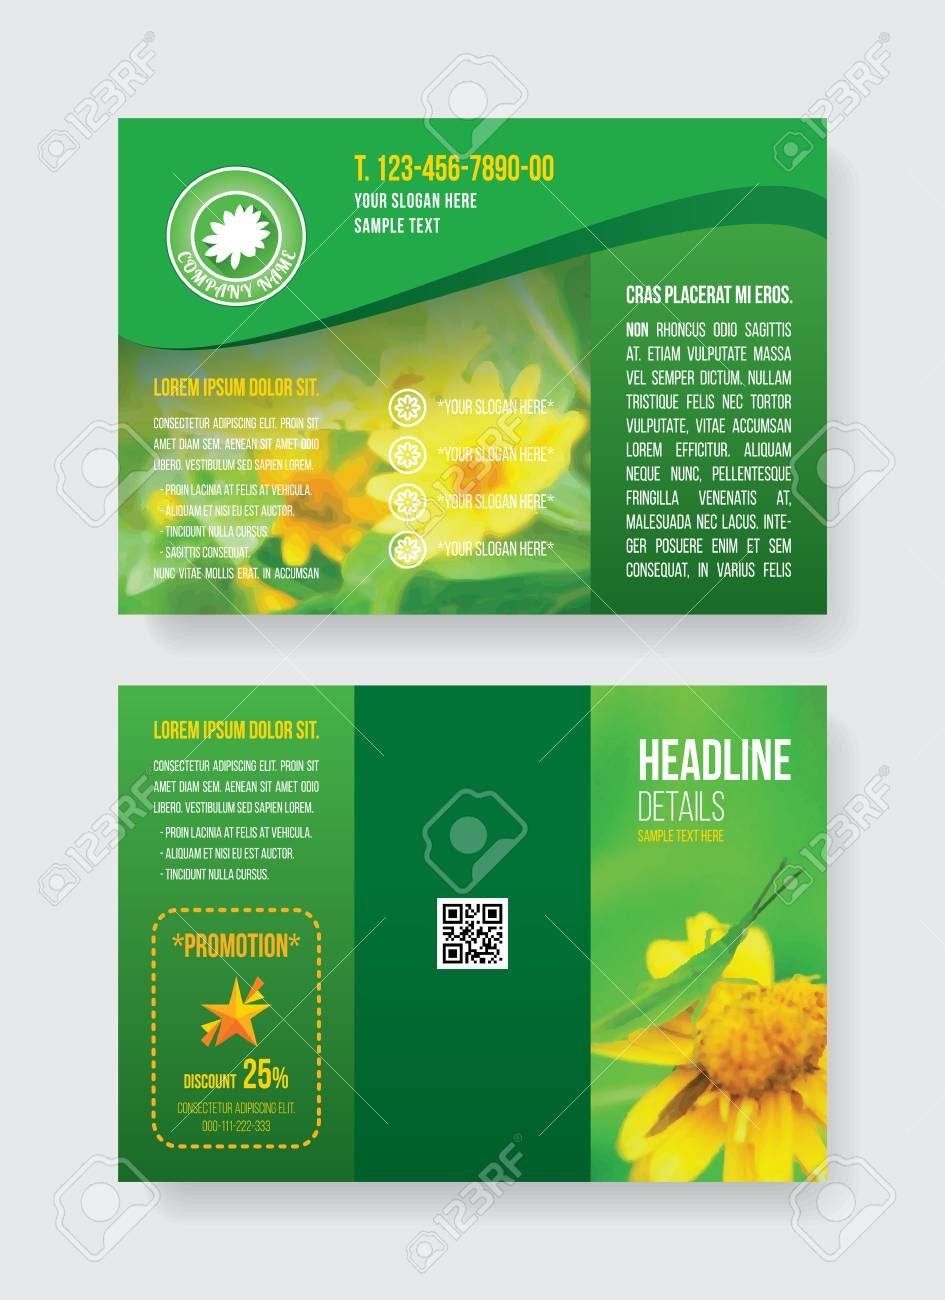 Green A4 fold3 brochure template two side grasshopper on yellow